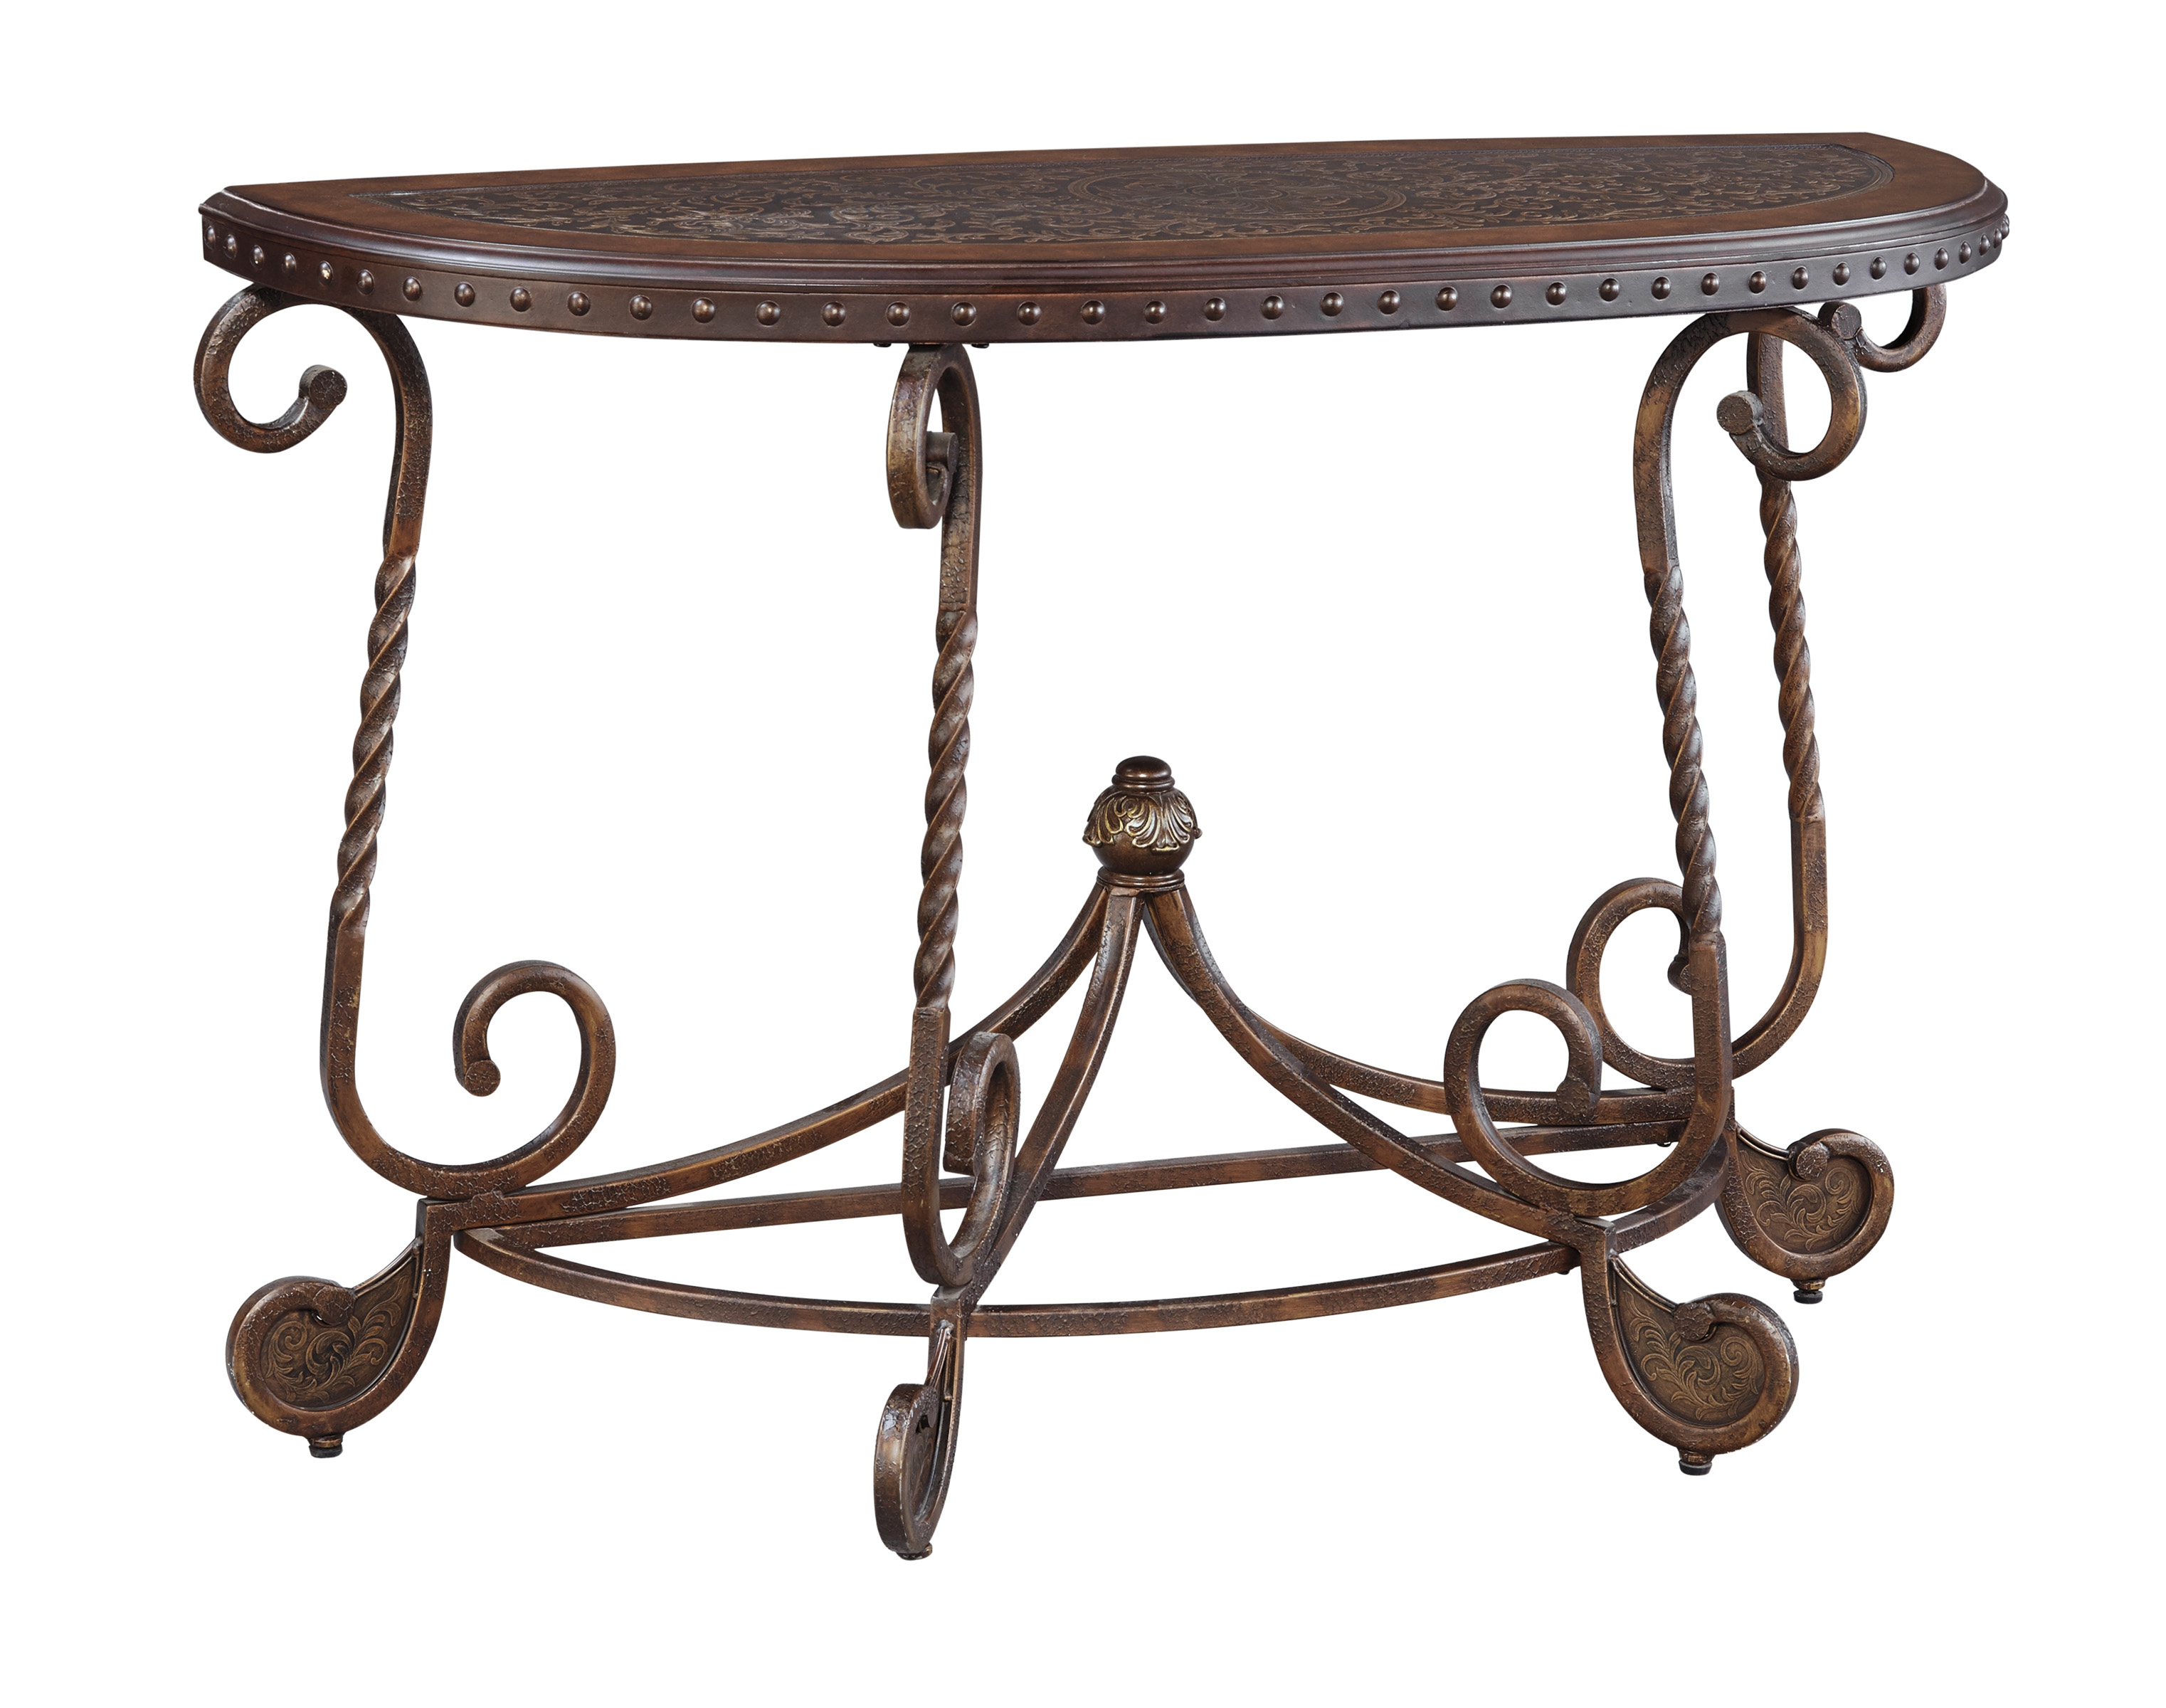 Peachy Ashley Furniture Rafferty Sofa Table The Classy Home Best Image Libraries Weasiibadanjobscom